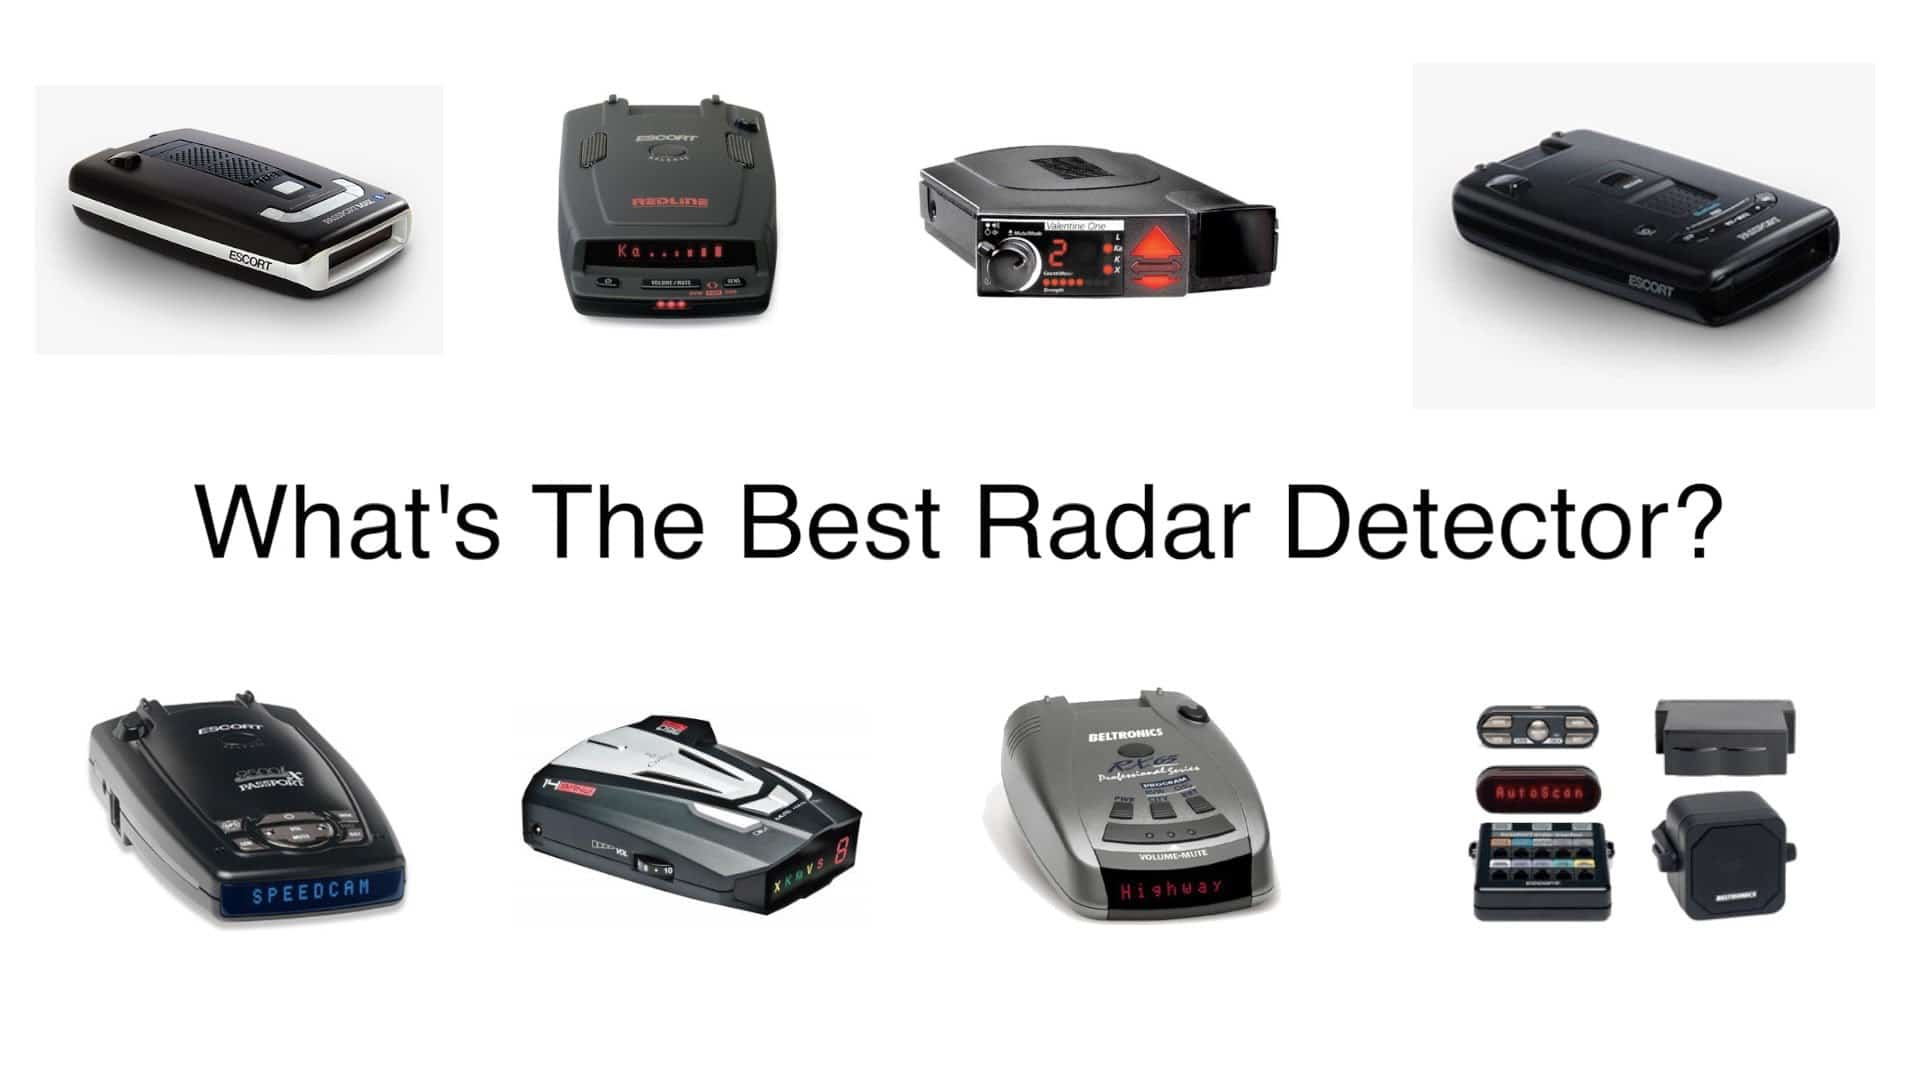 What Is The Best Radar Detector For 2019